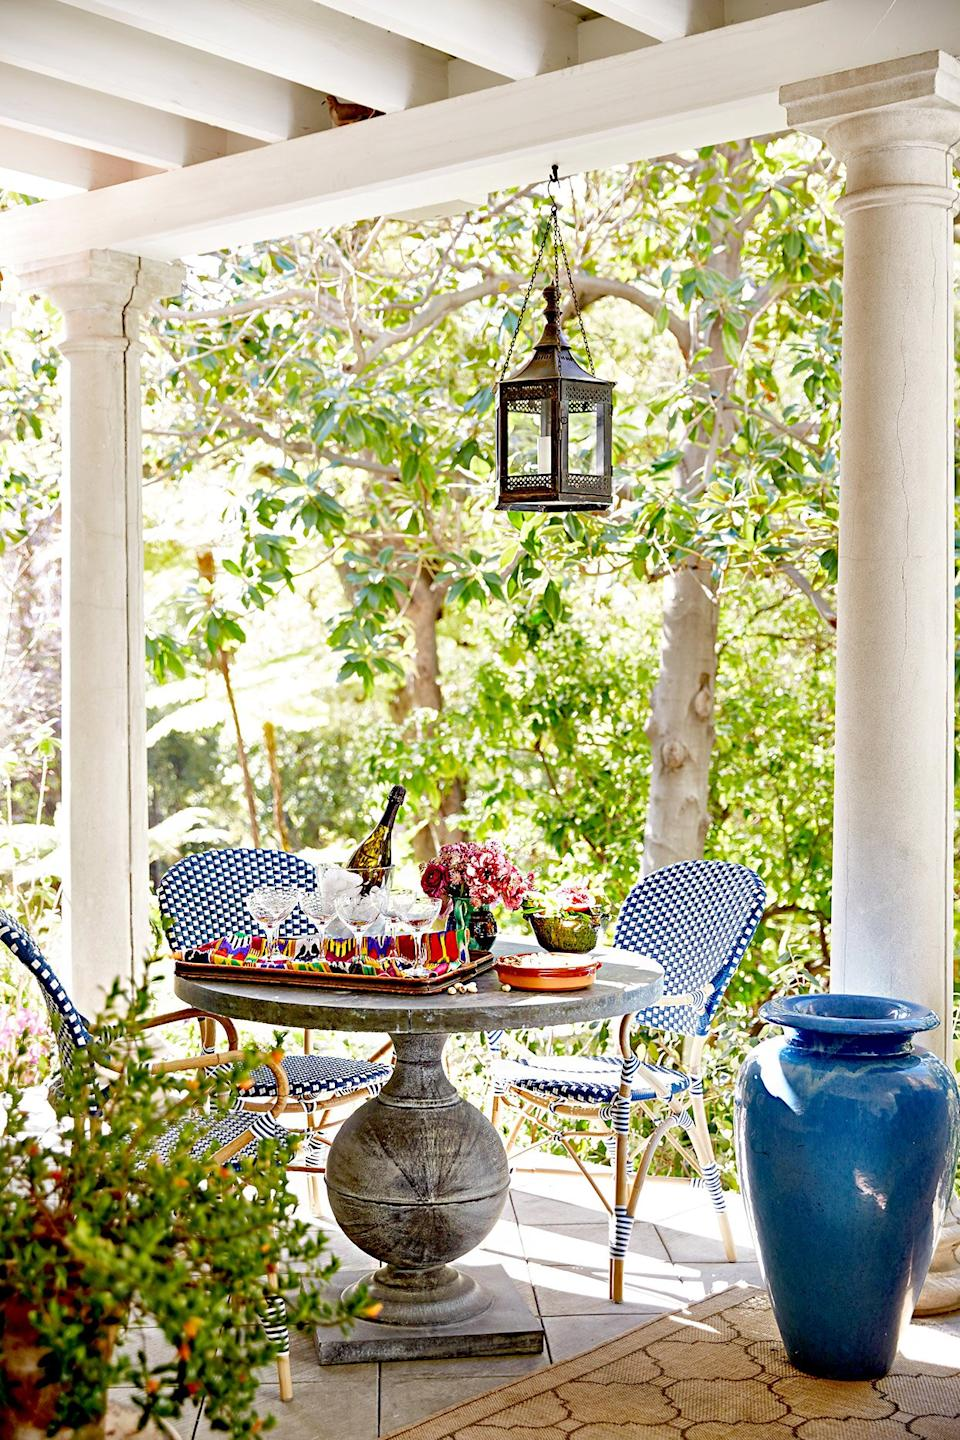 10 Stylish Ideas For A Small Front Porch